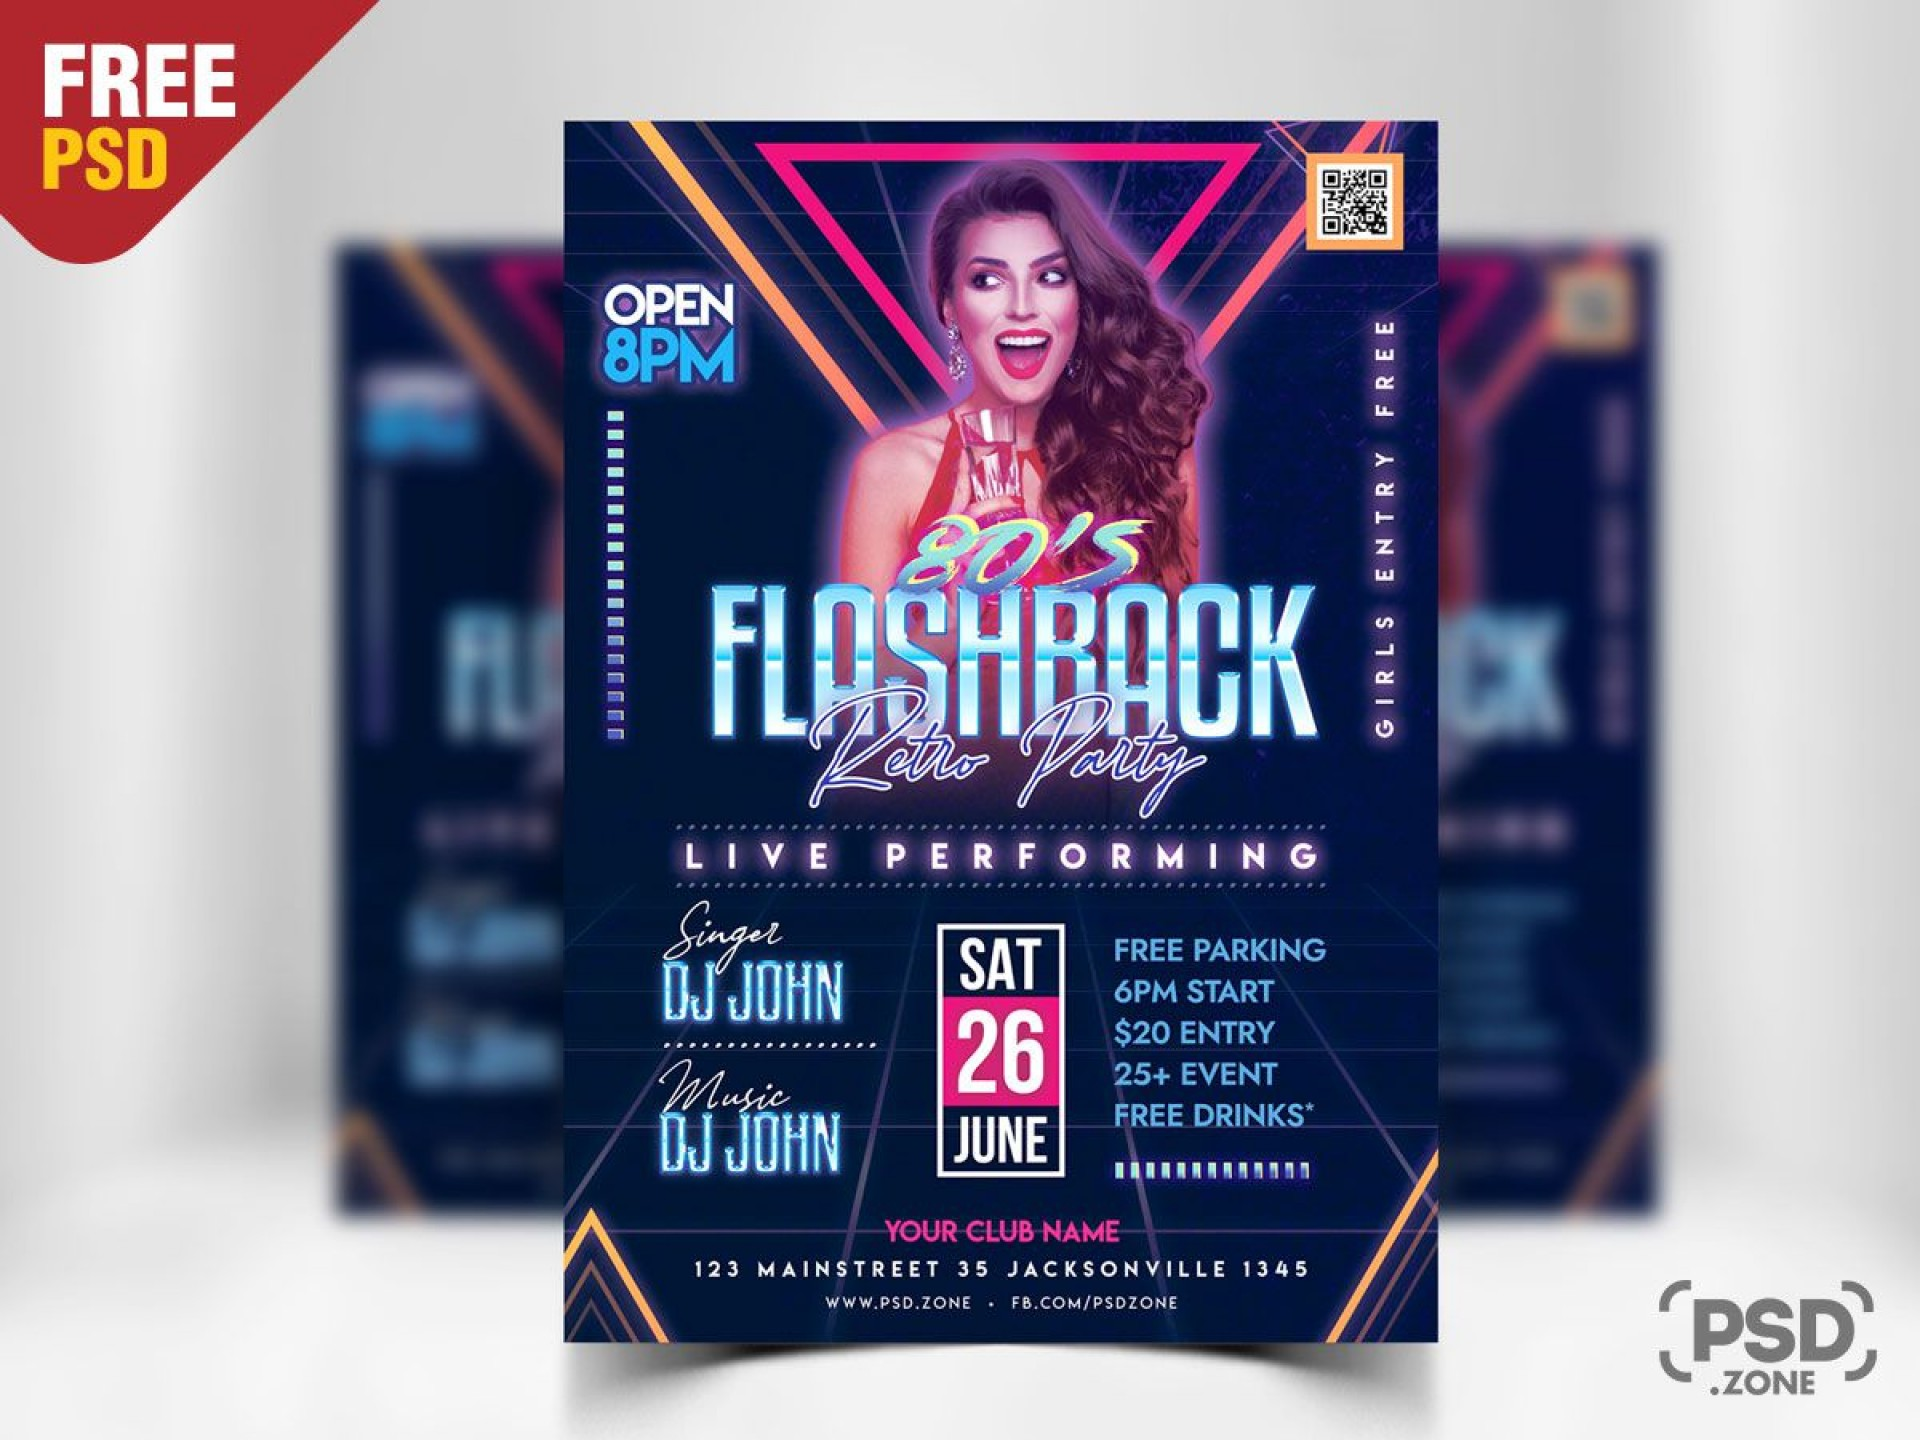 010 Top Free Party Flyer Template For Photoshop Inspiration  Pool Psd Download1920